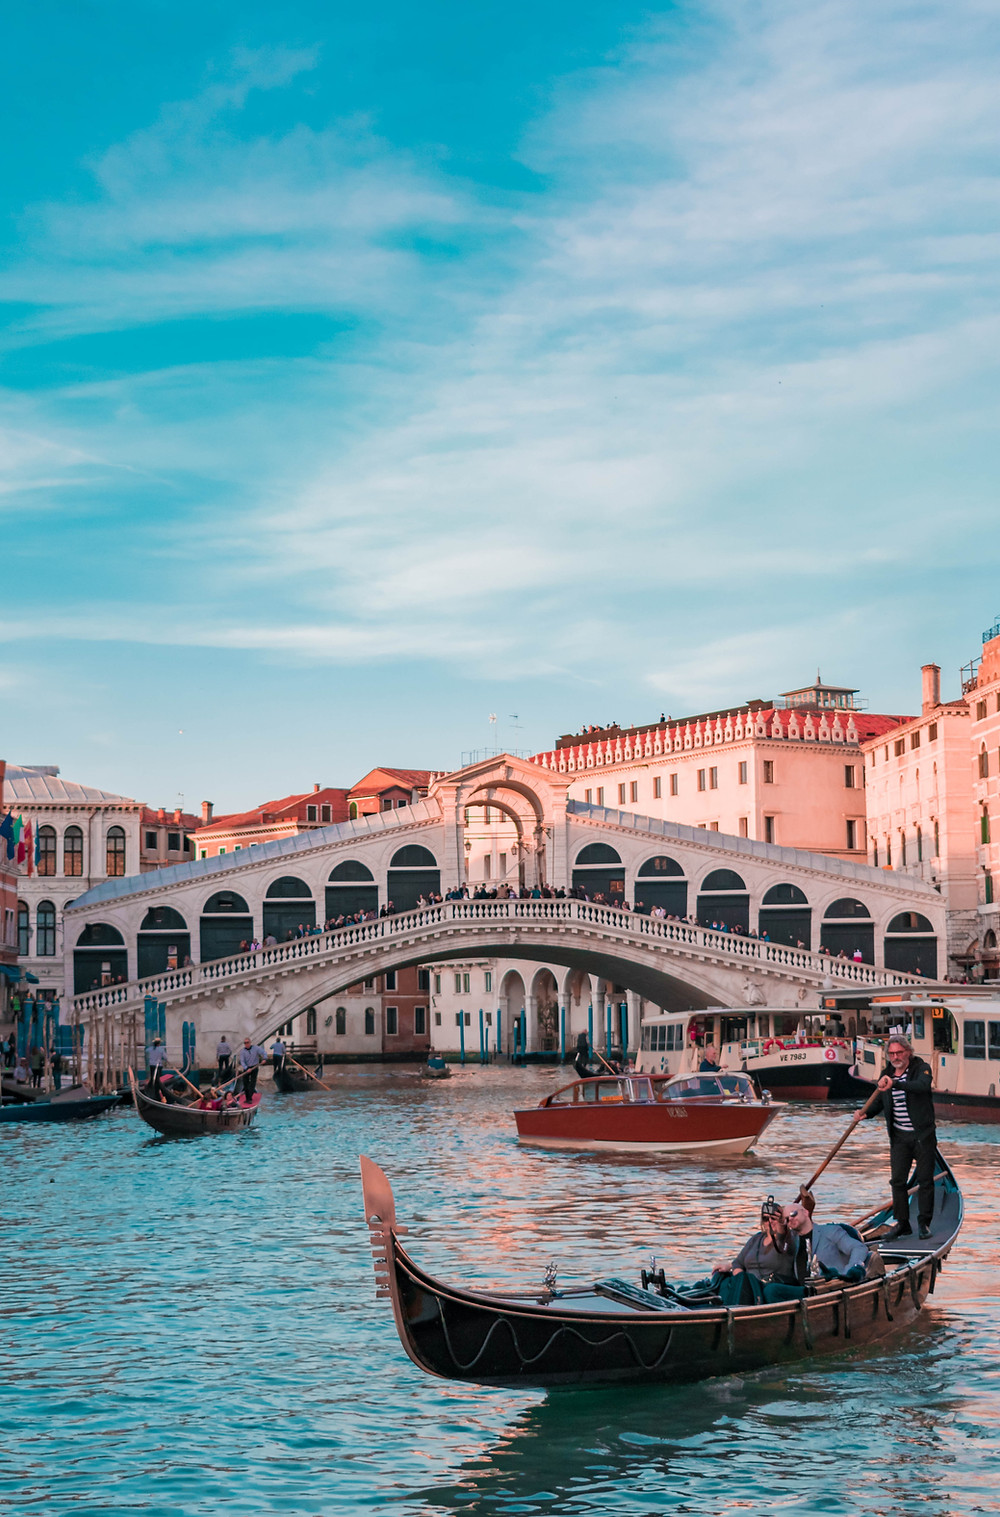 View of the Rialto Bridge in Venice, with a gondola in the foreground and blue skies above